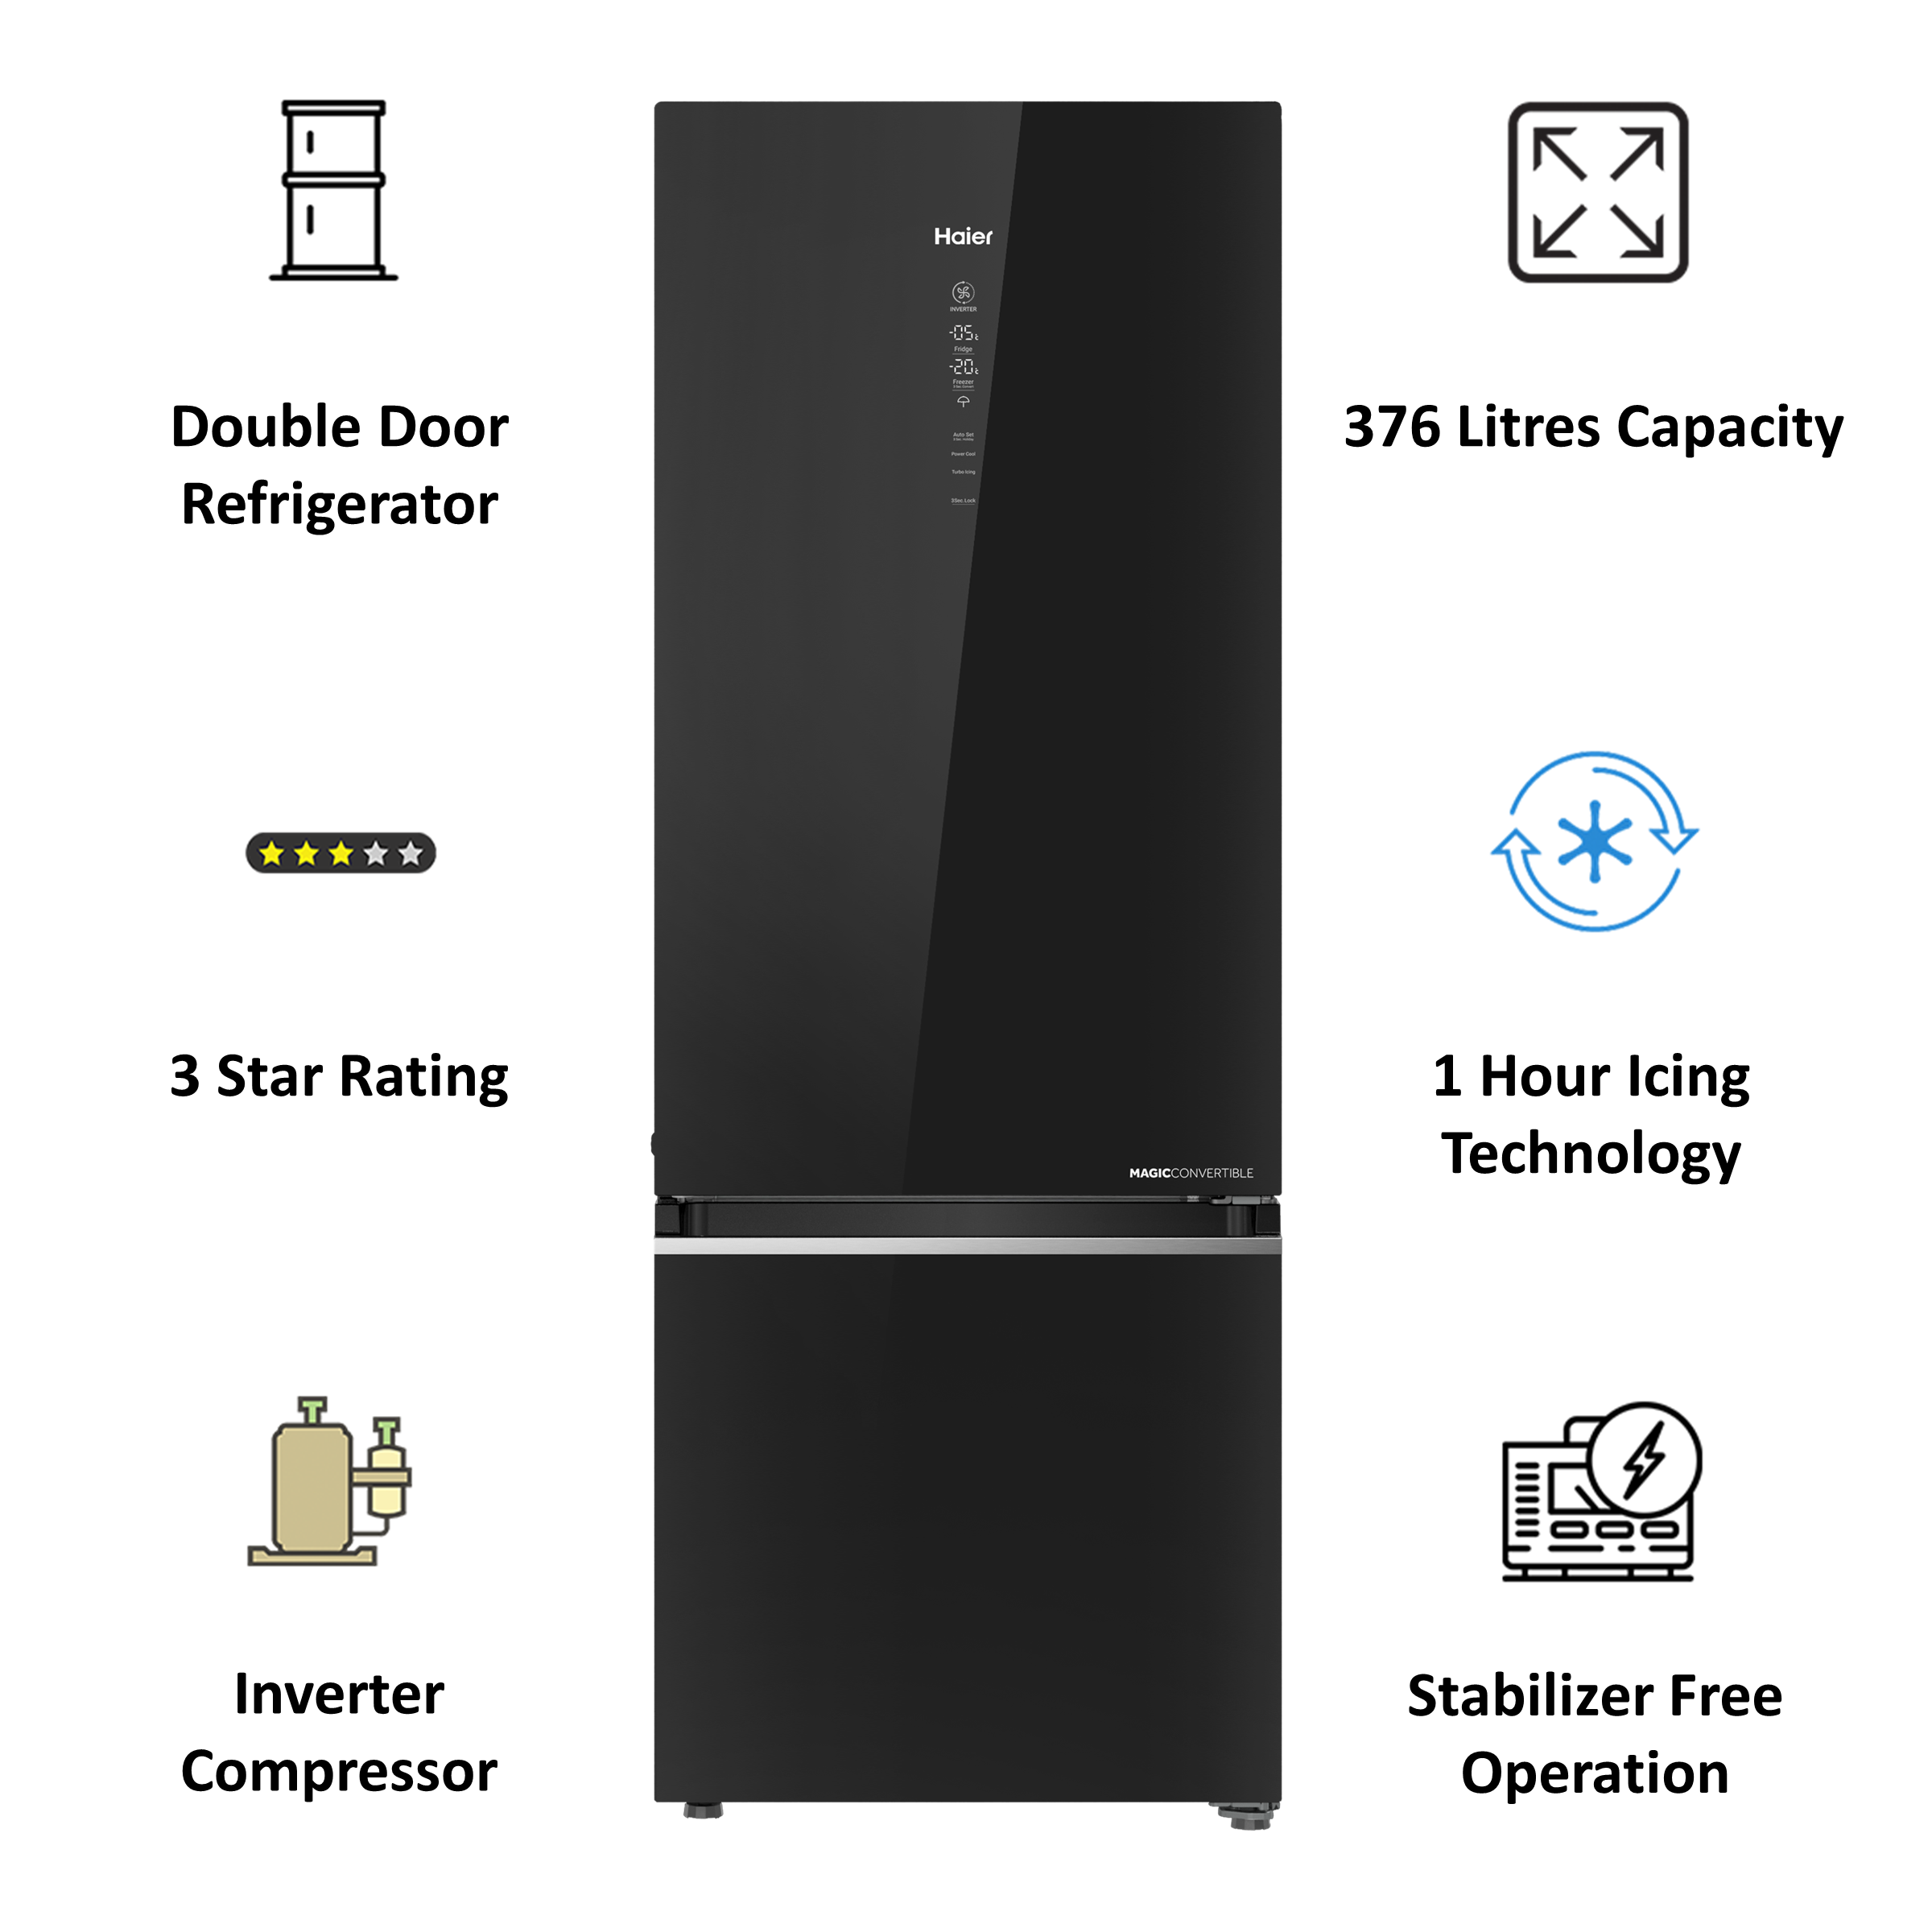 Haier Magic Convertible 376 Litres 3 Star Frost Free Triple Inverter Double Door Refrigerator (14-in-1 Convertible Mode, HRB-3964PKG-E, Black Glass)_4